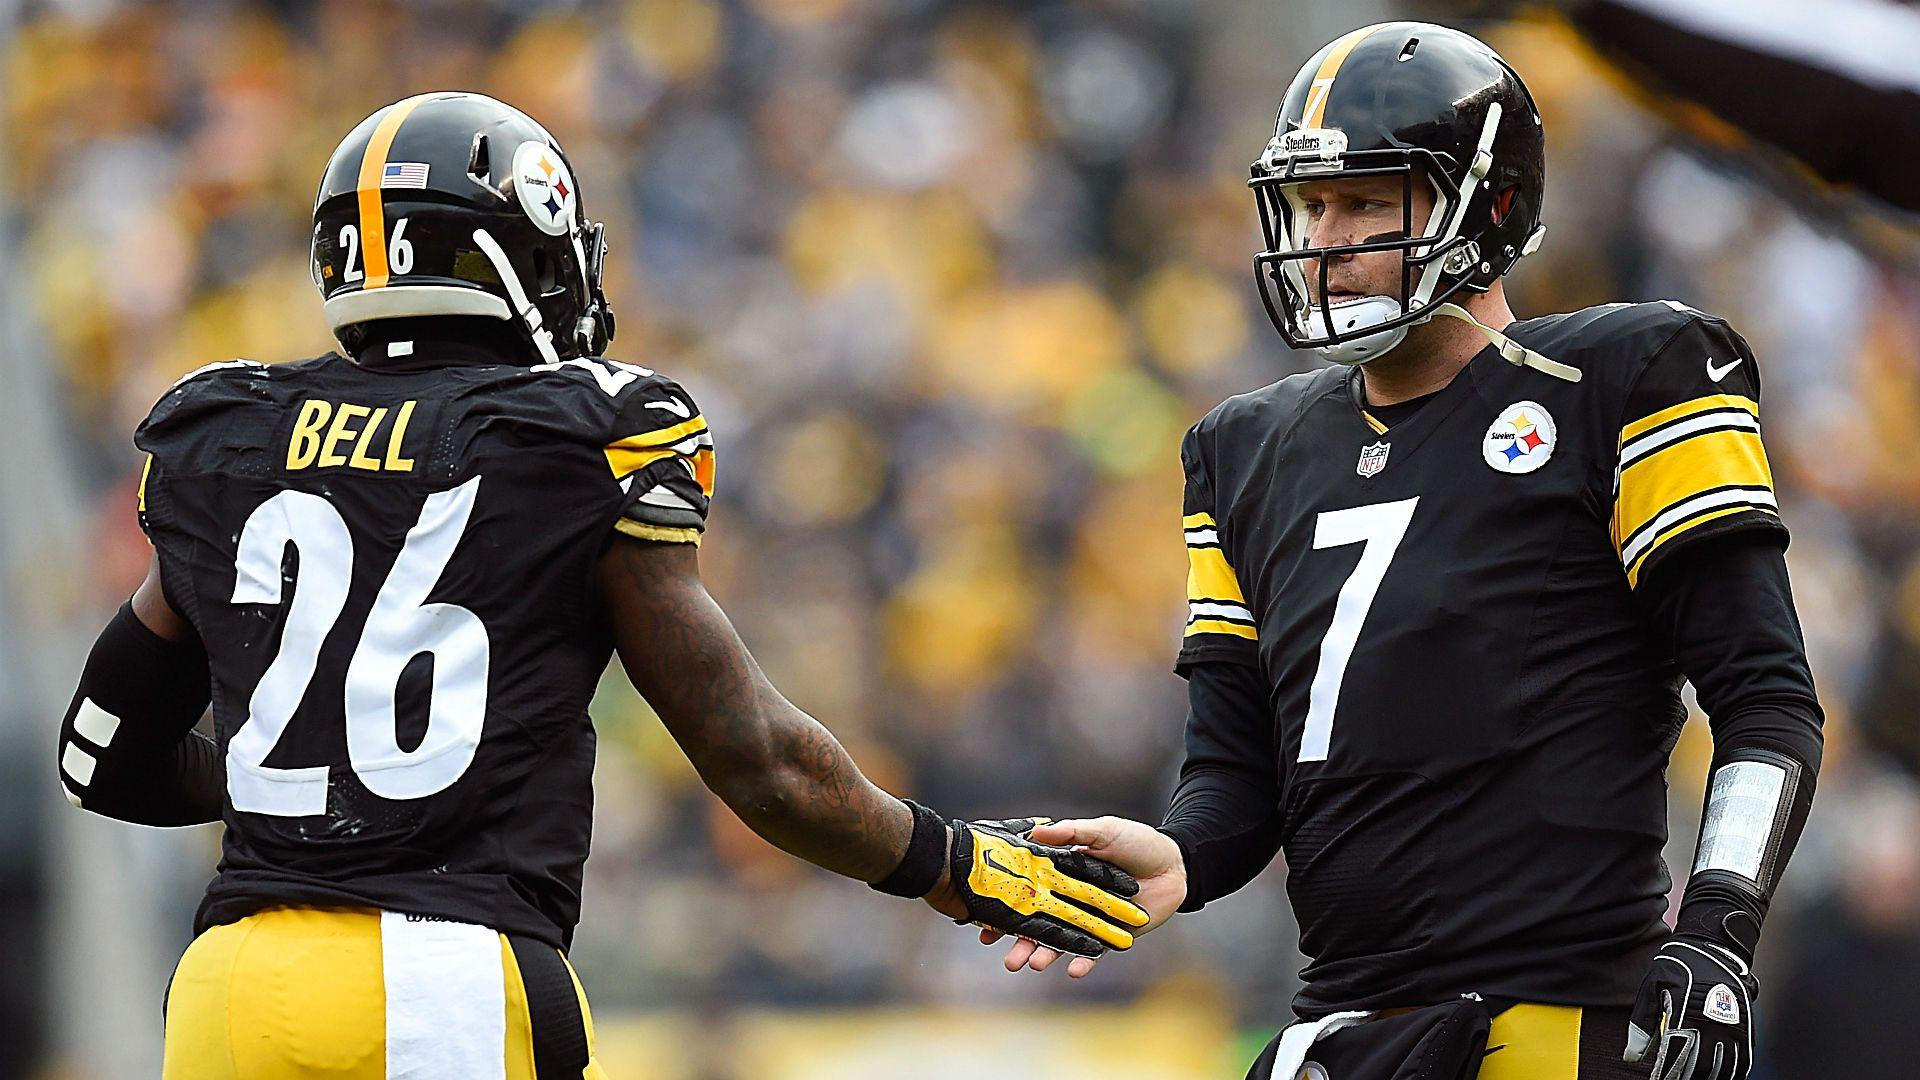 Ben Roethlisberger 'first to admit' he wasn't good teammate early